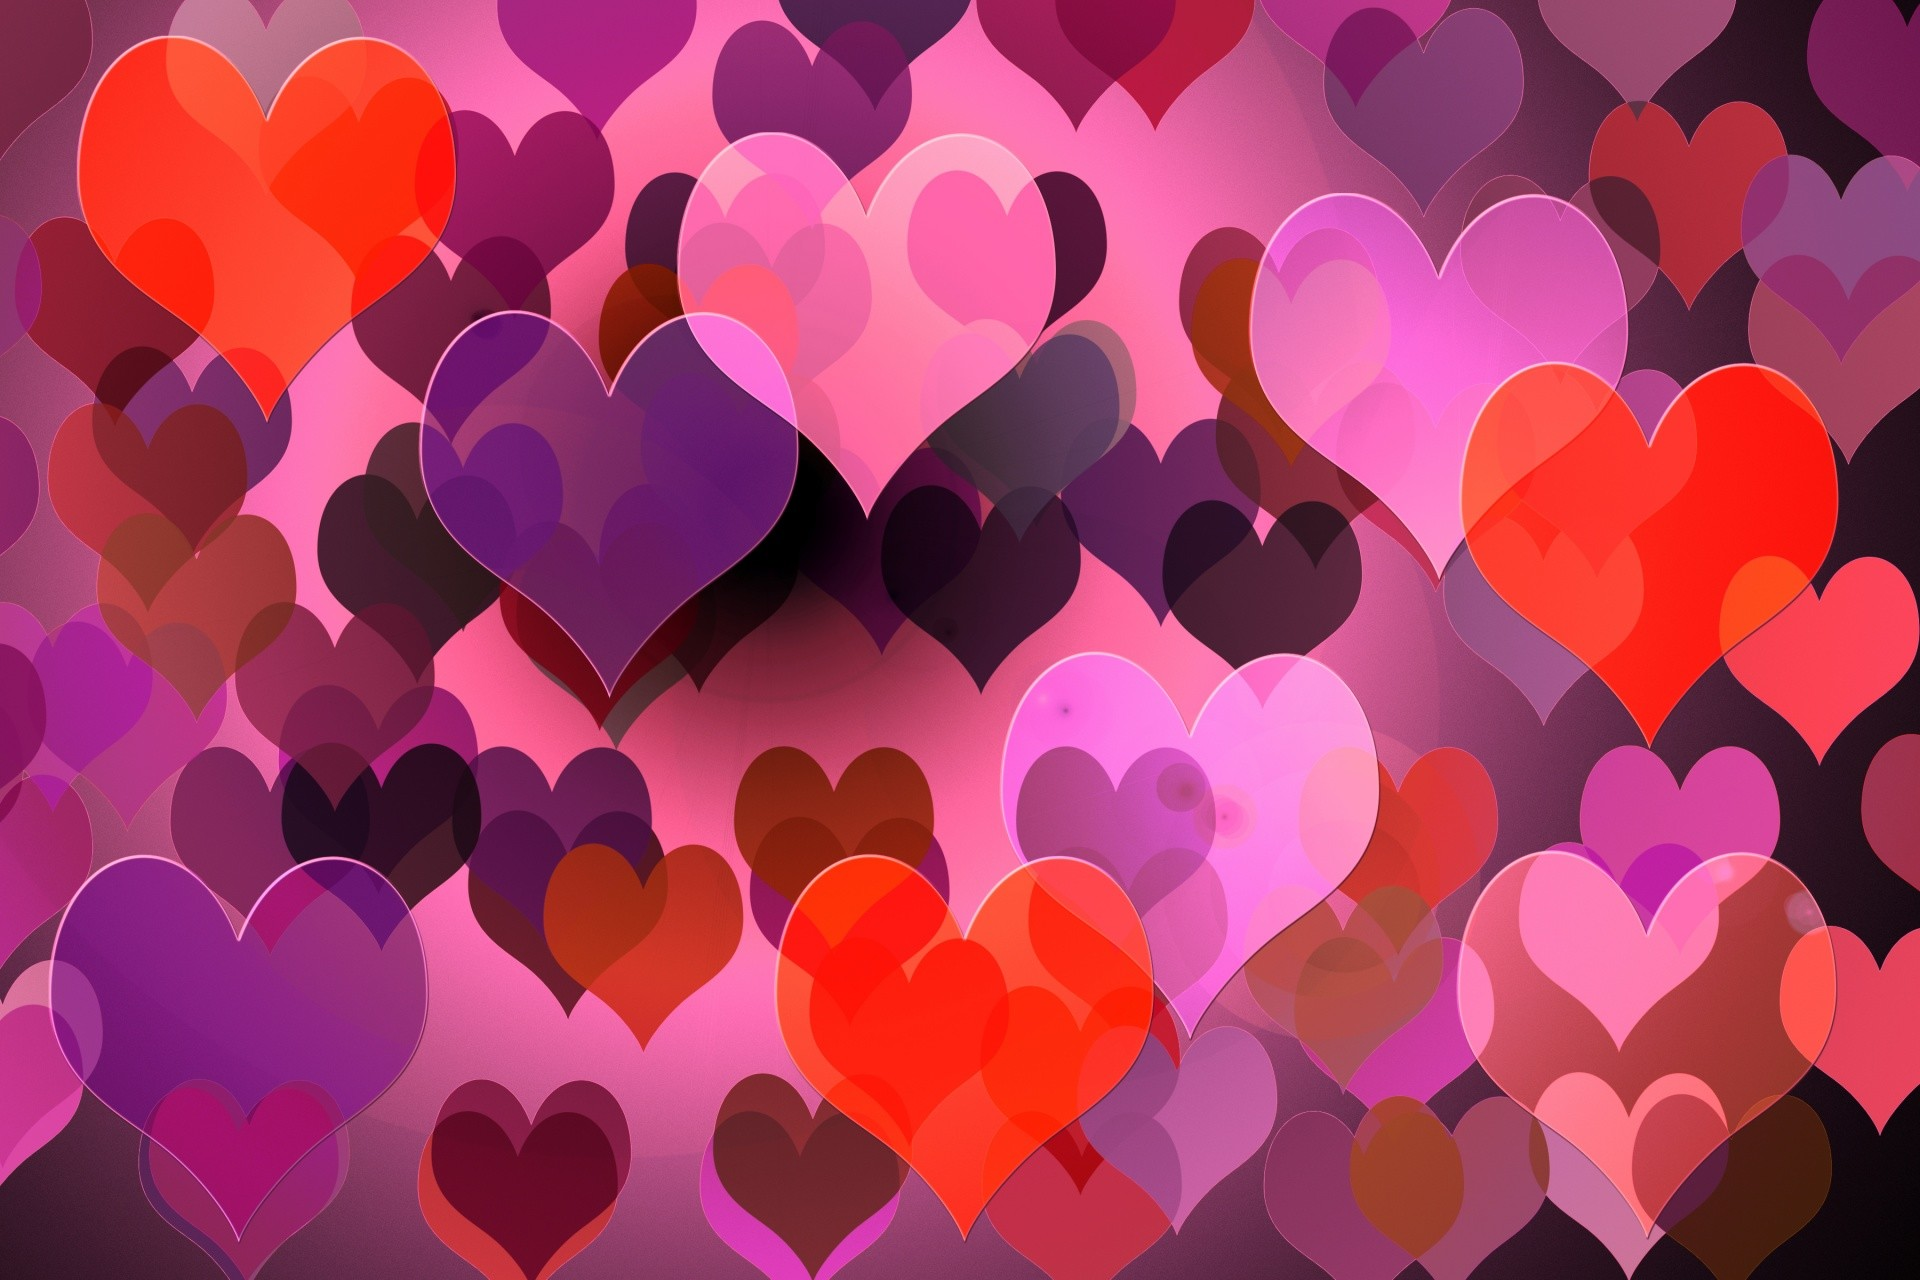 Purple Hearts Backgrounds (47+ images)